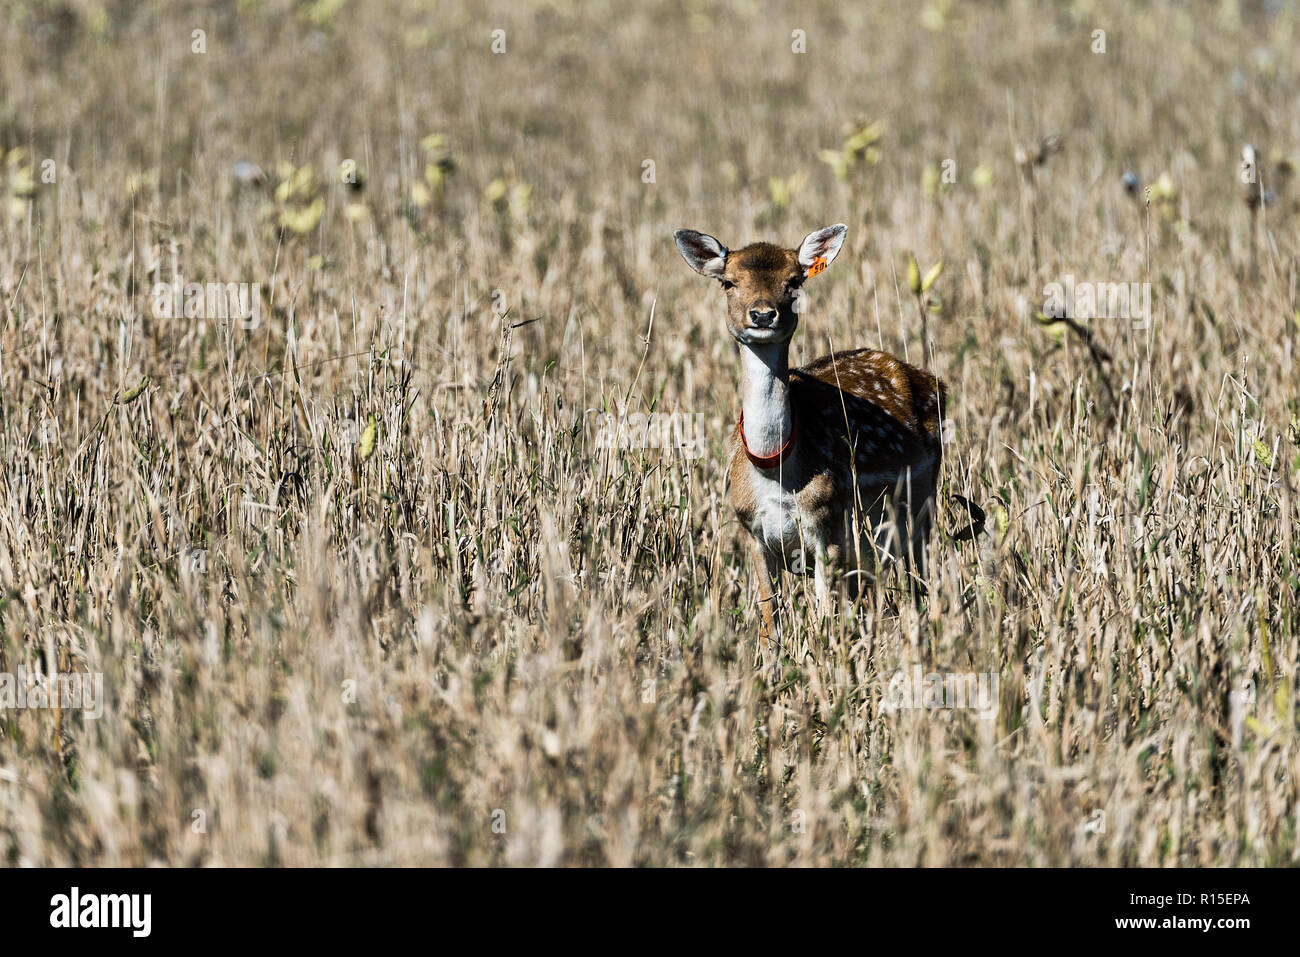 Young deer feeding in the enclosed pasture of a commercial deer farm, LedgEnd Farm, Middlebury, Vermont, USA. - Stock Image